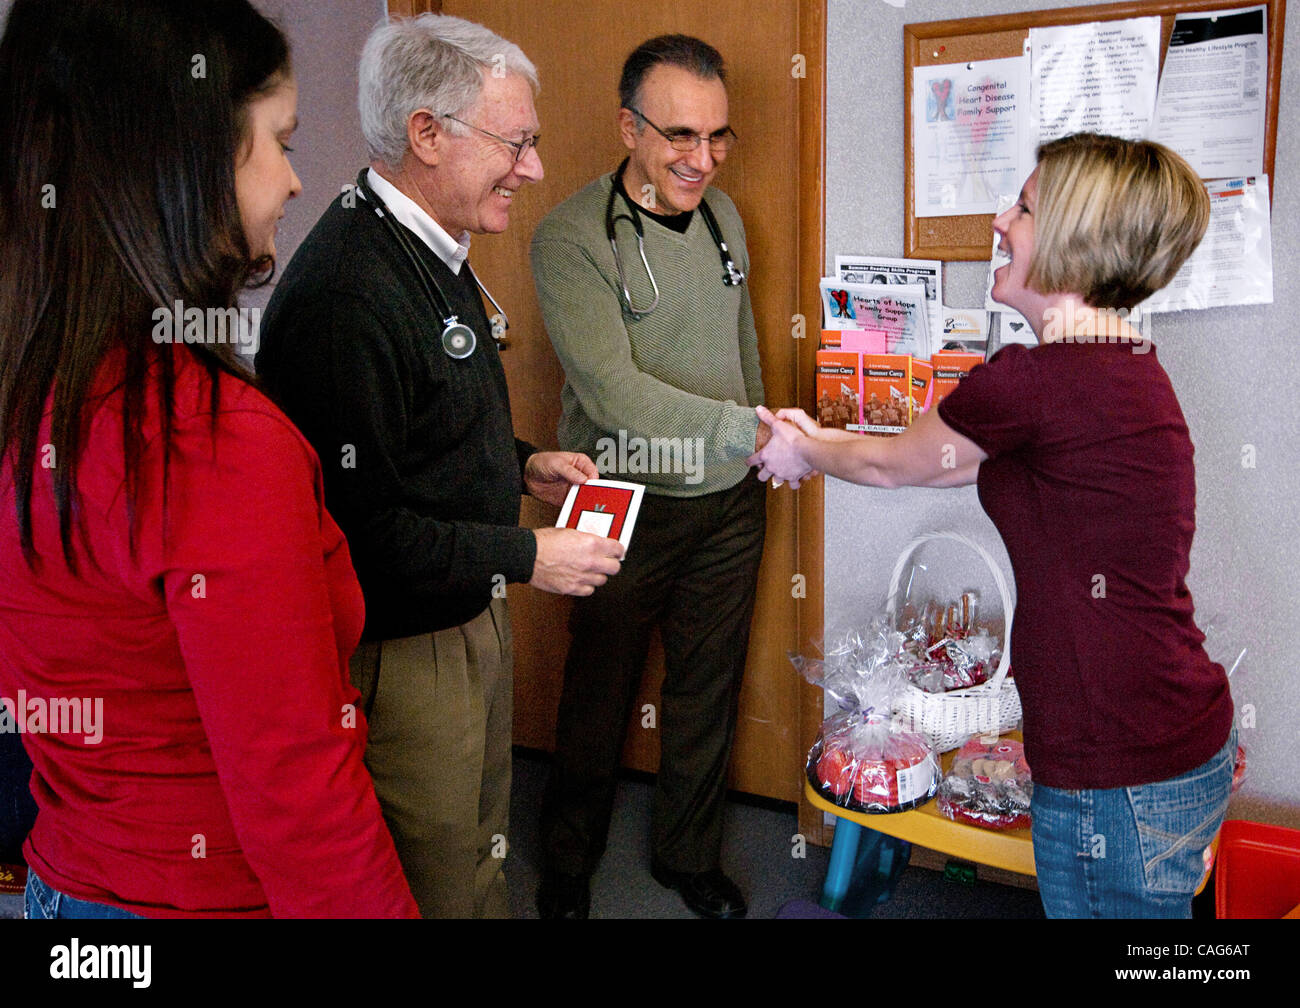 JUMP Valerie Boesen (cq), Left, Delivers Valentine Cookie Baskets To  Pediatric Cardiologists Dr. Andrew Juris (cq) And Dr. Hessam Fallah (cq)  With Amber ...